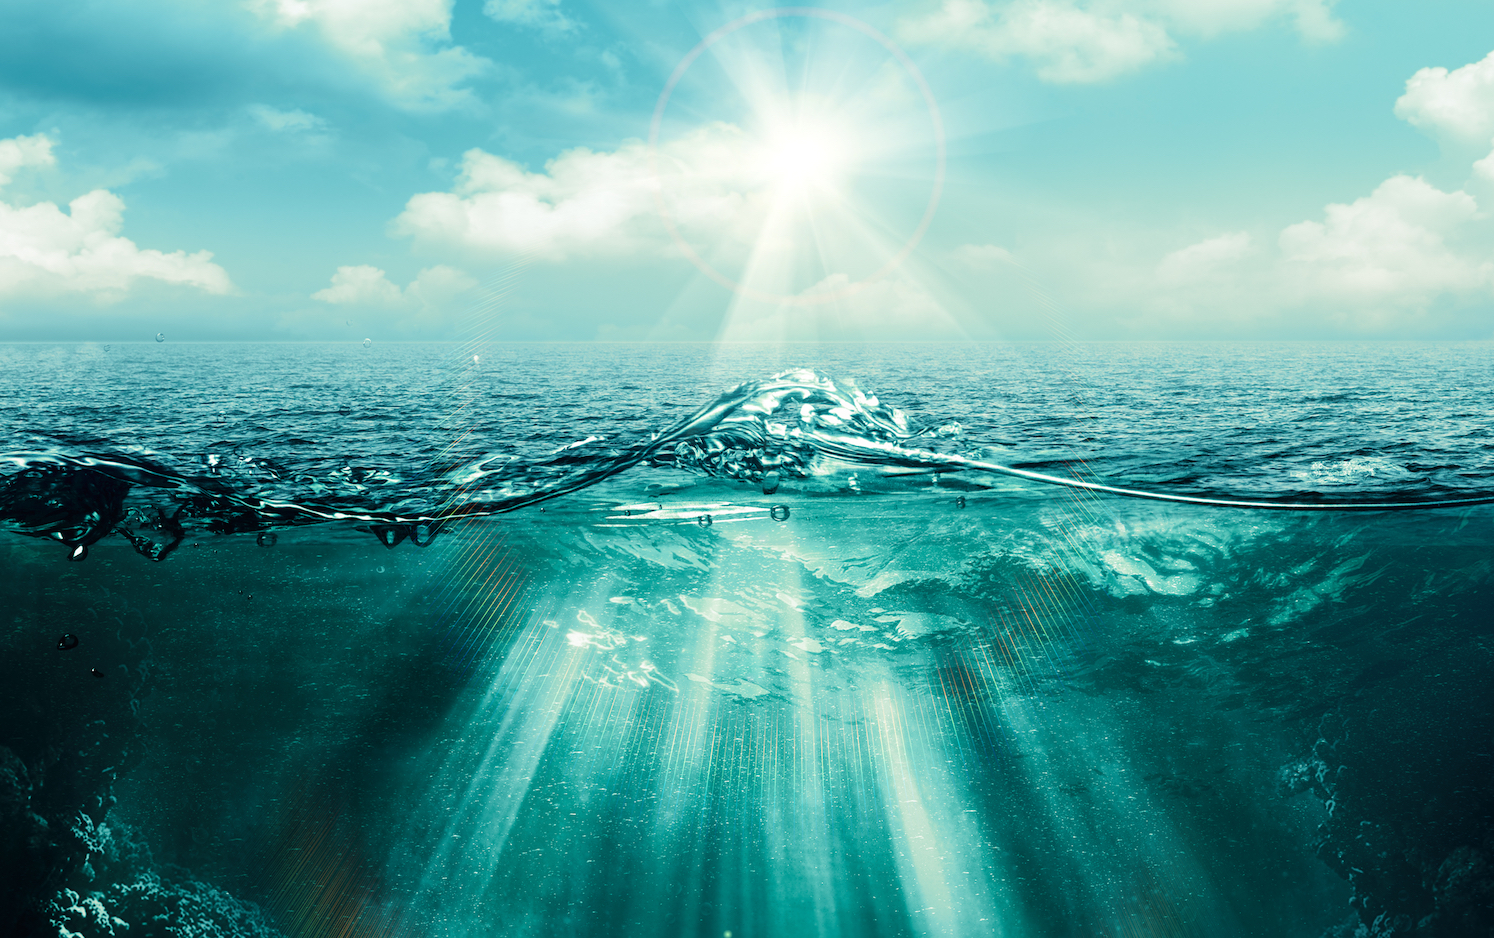 The world's oceans are losing oxygen,but the technology to model this loss and project future rates of deoxygenation is insufficient, according to a new study.